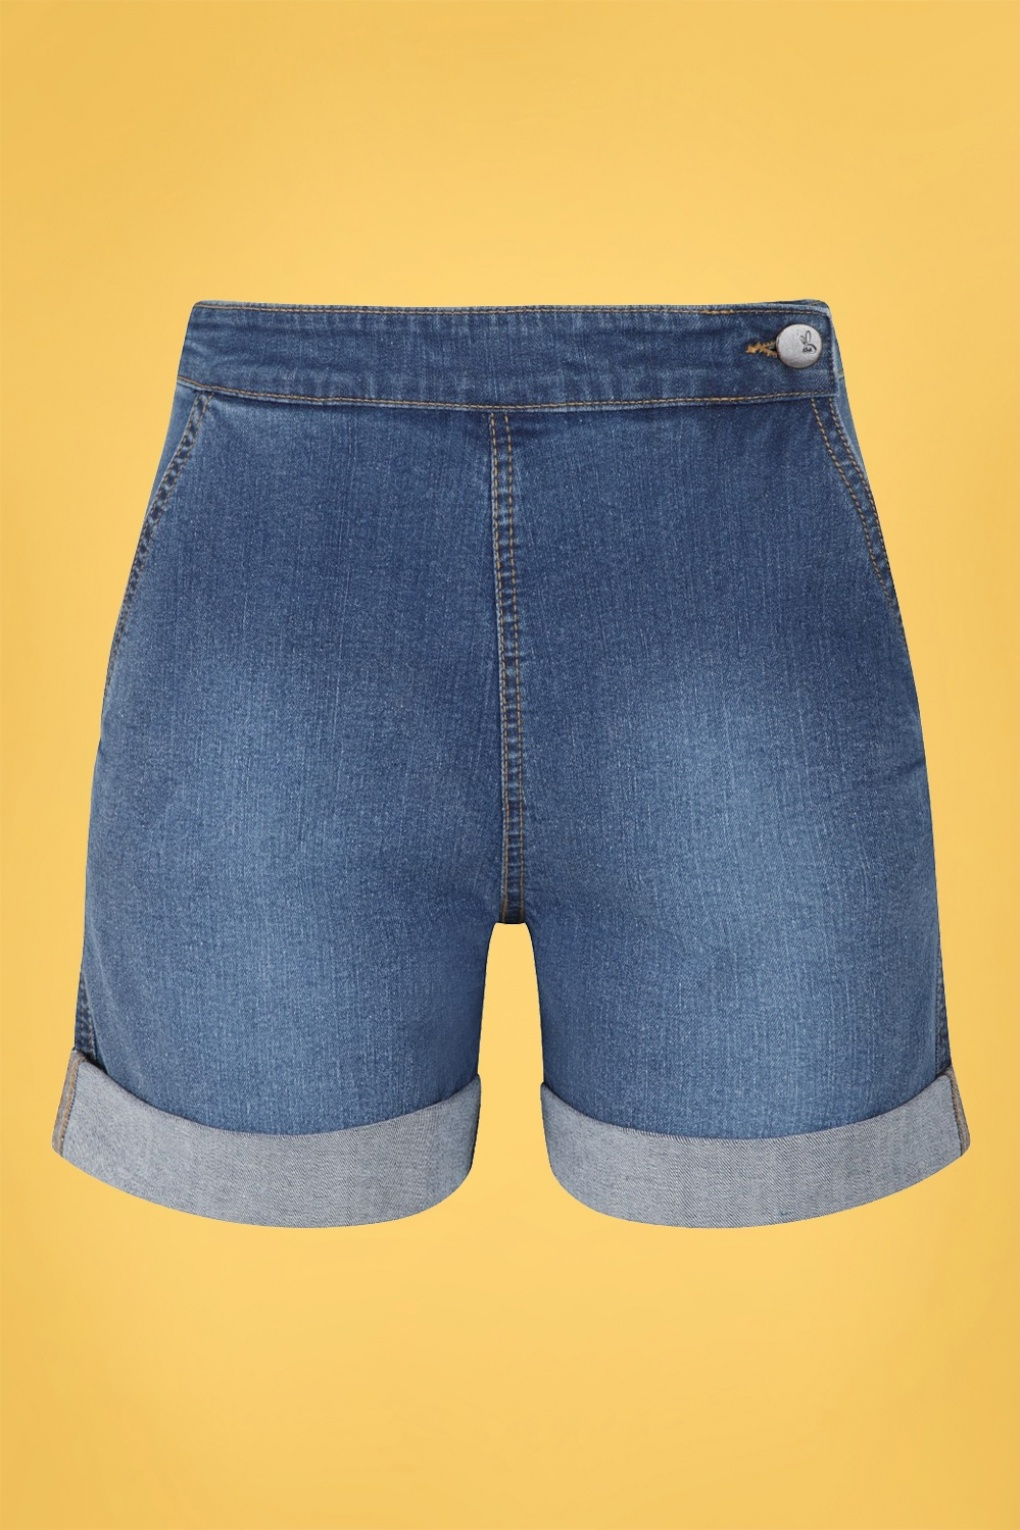 Vintage High Waisted Shorts, Sailor Shorts, Retro Shorts 50s Nash Denim Shorts in Blue £34.95 AT vintagedancer.com